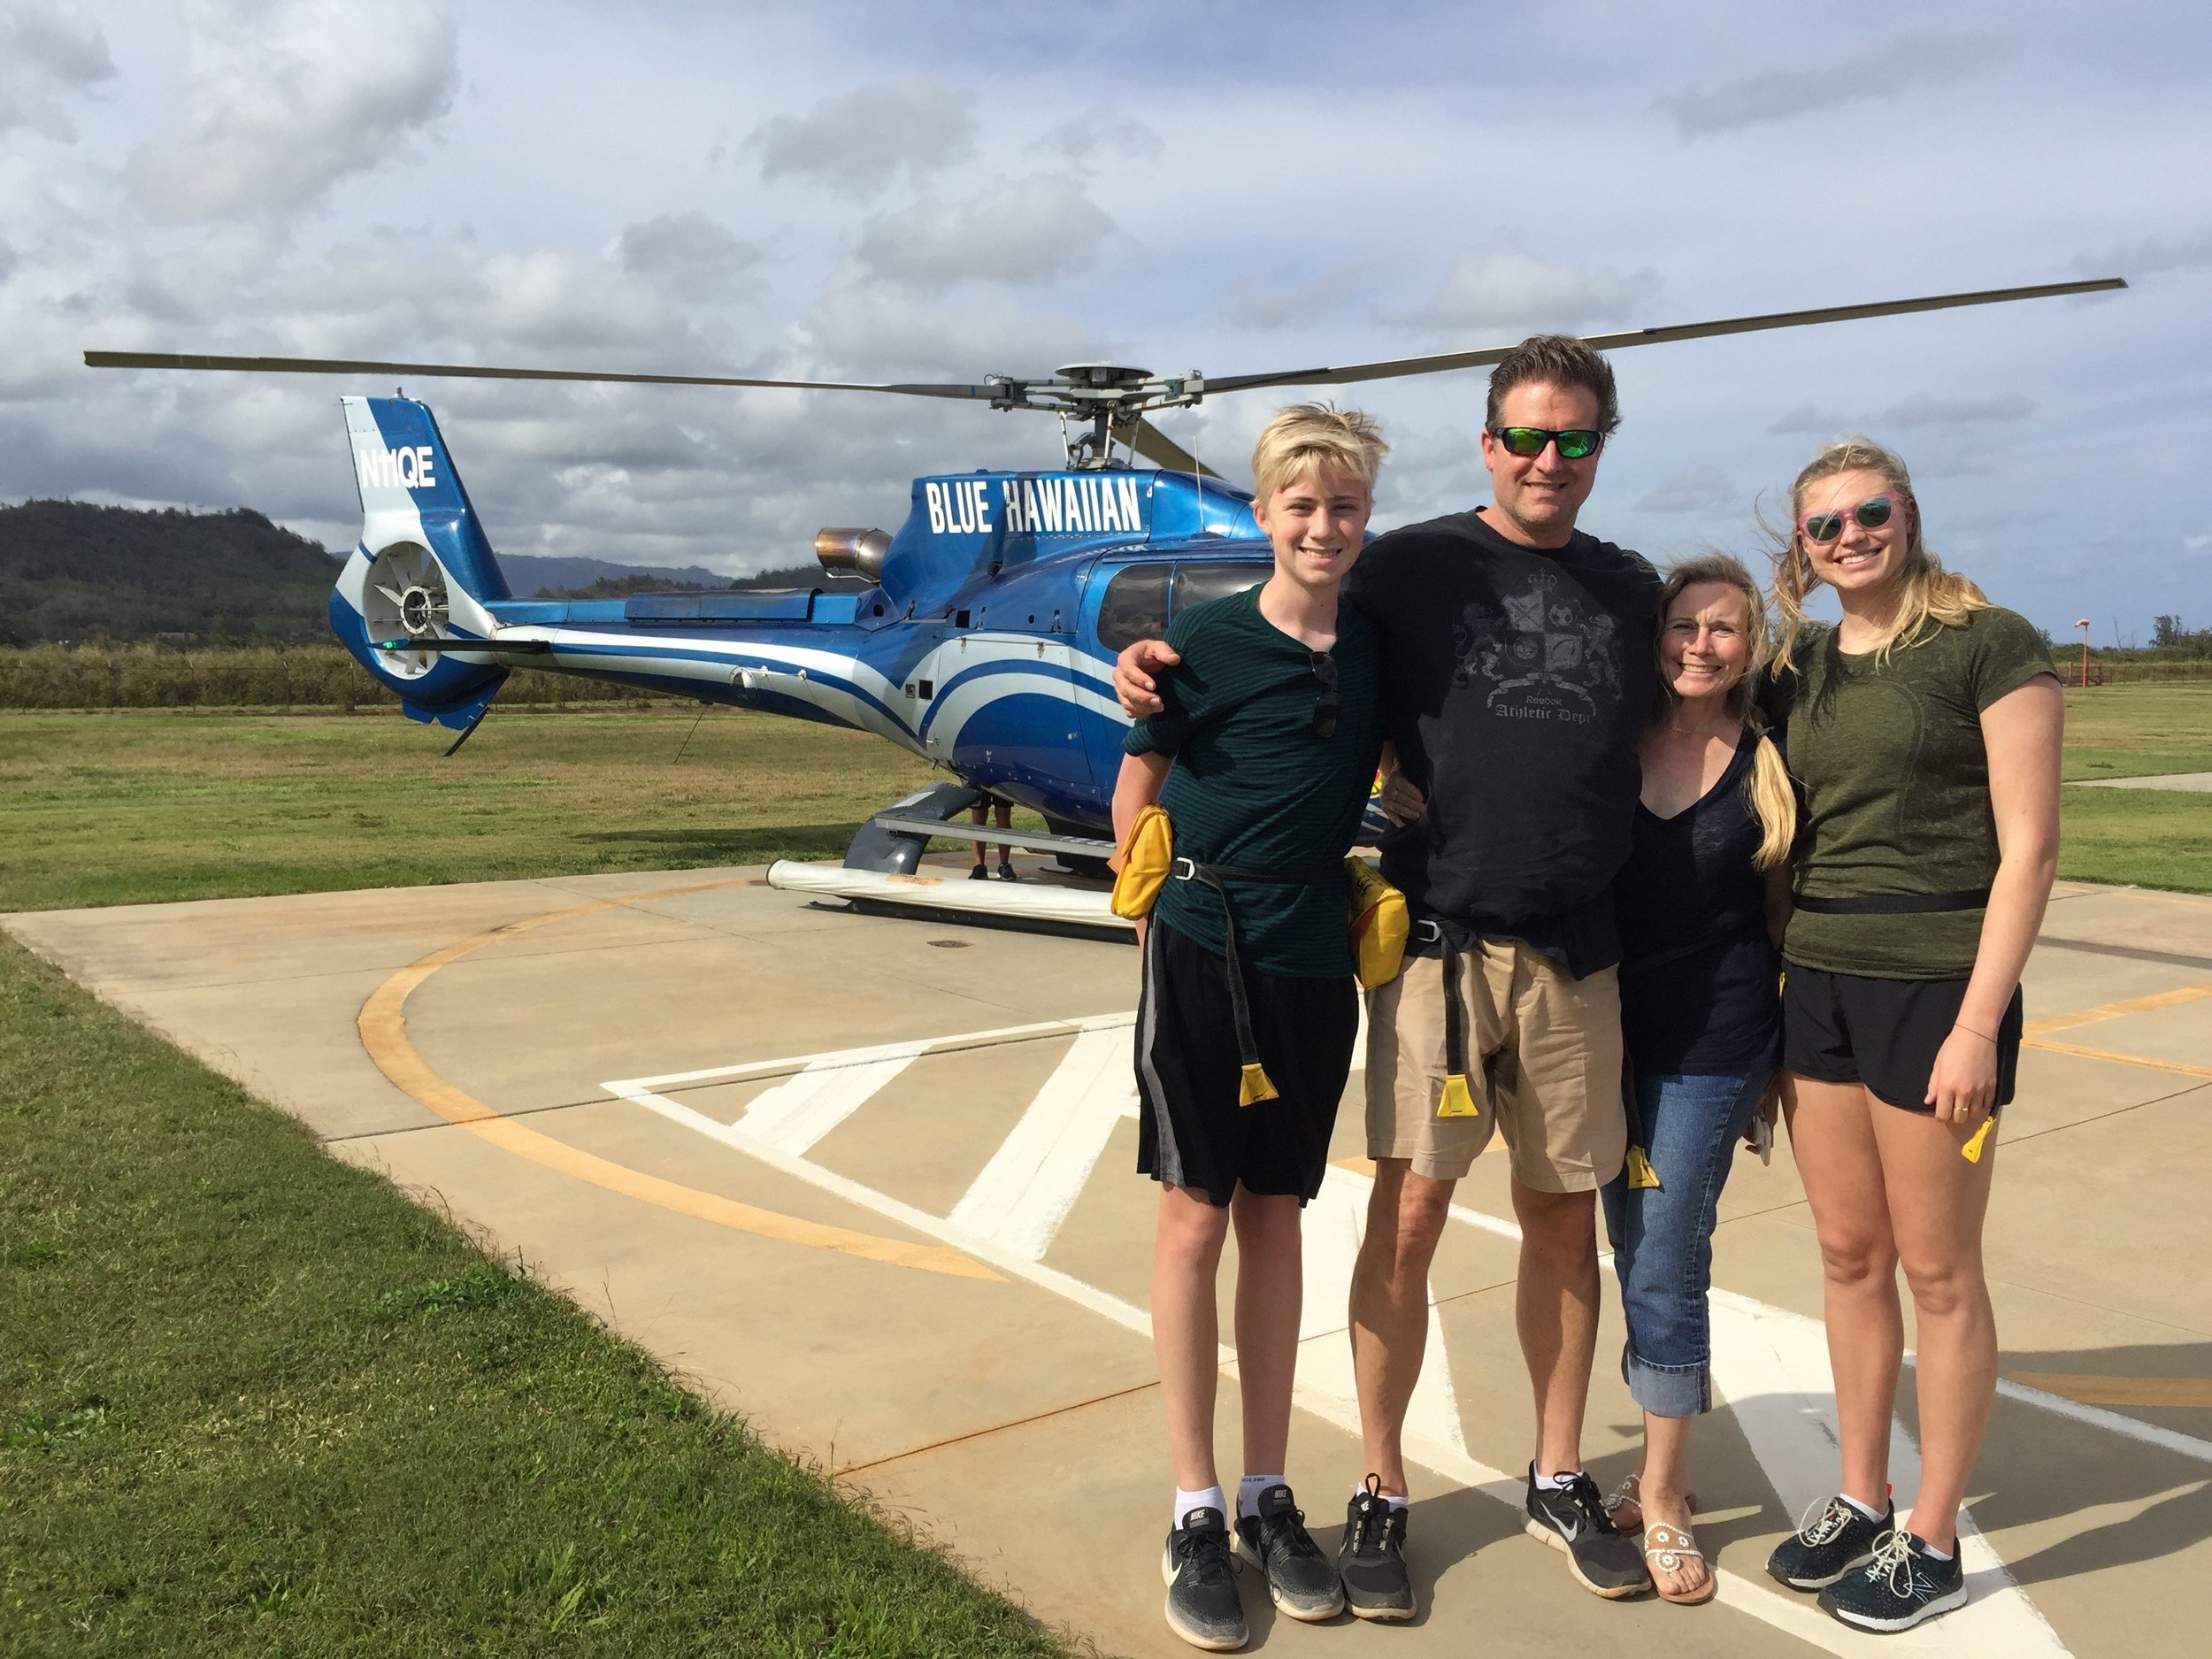 The Hodsons tried to helicopter from Kauai to Japan in 2017 before turning back after a few minutes due to limited fuel capacity.